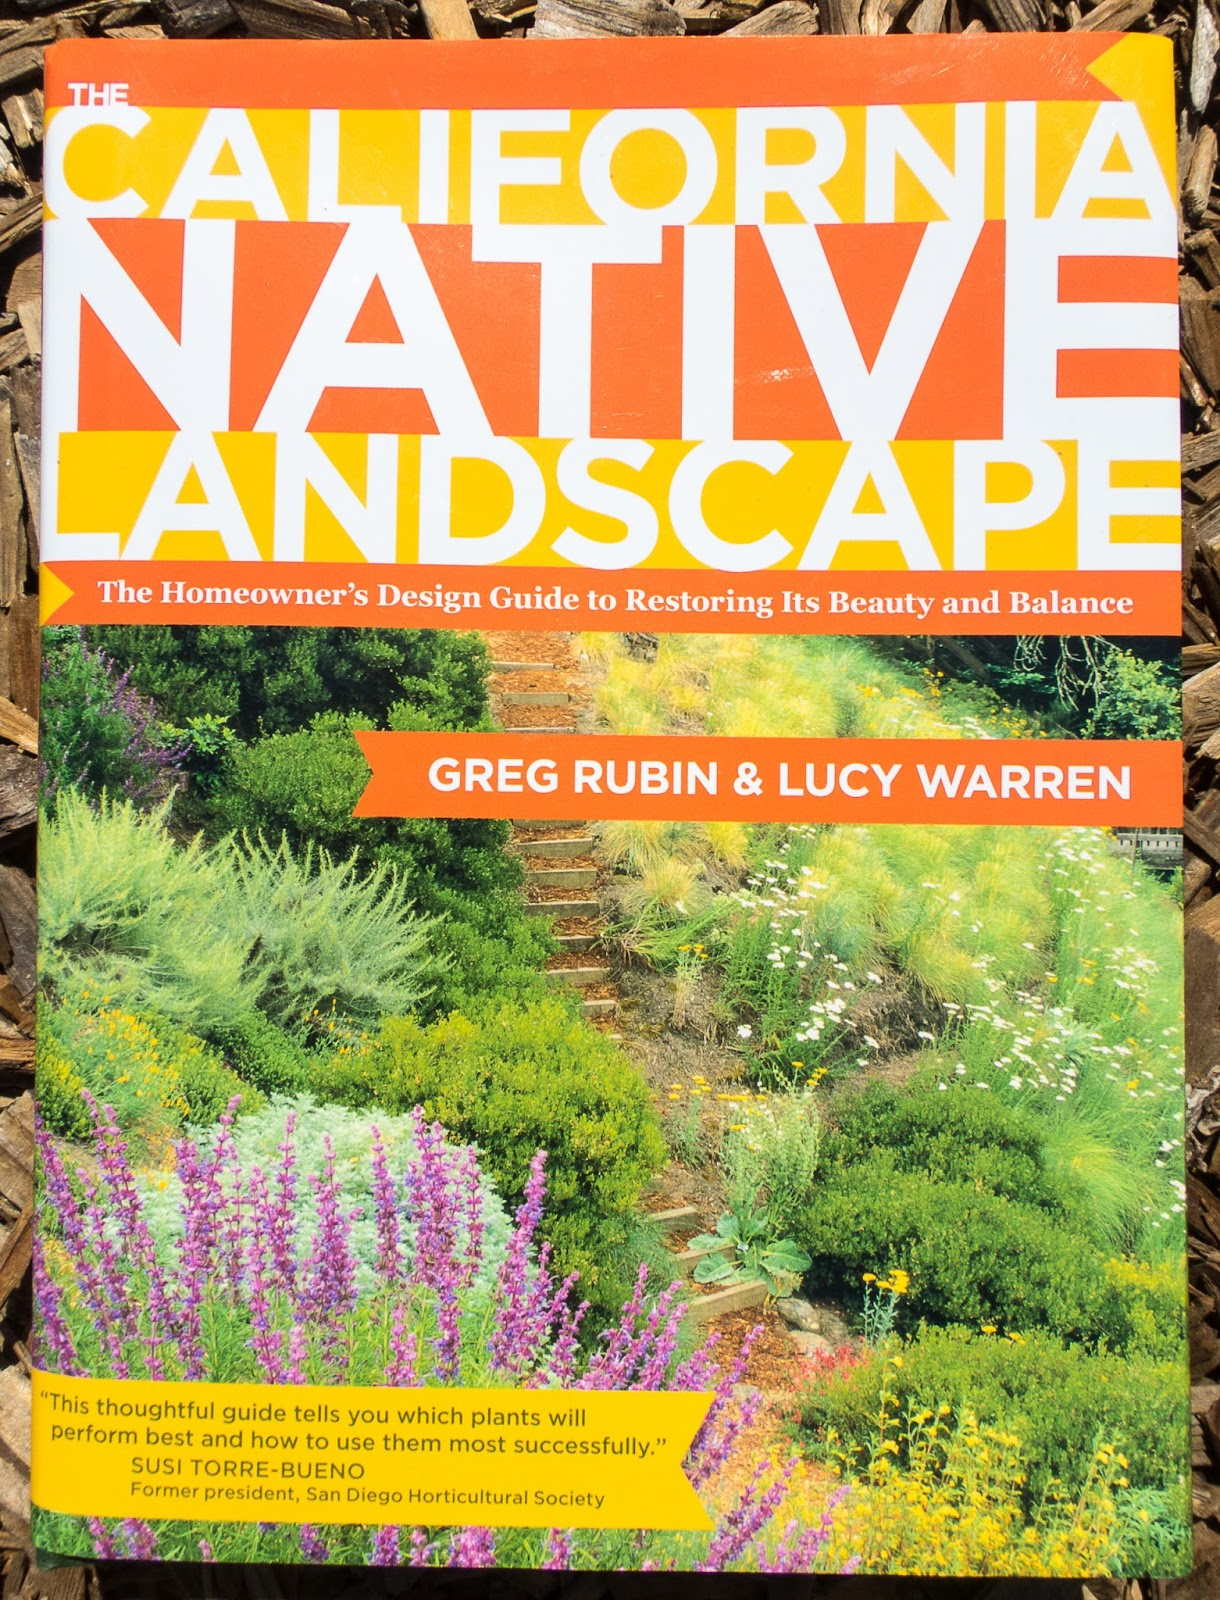 The california native landscape by greg rubin and lucy warren for Garden design books